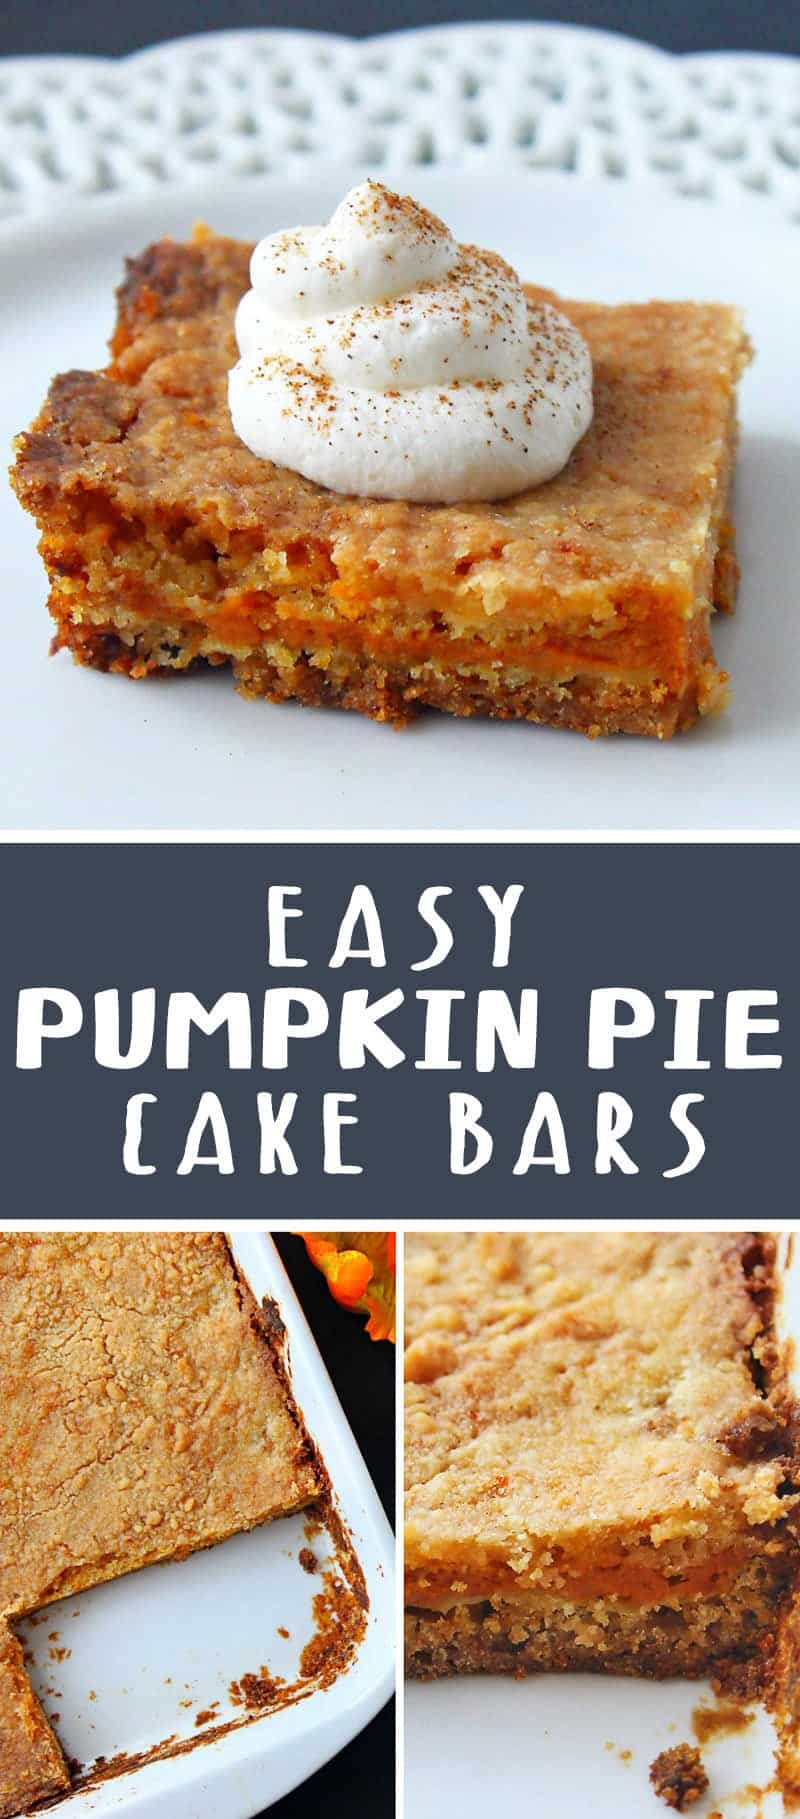 Easy Pumpkin Pie Cake Bars